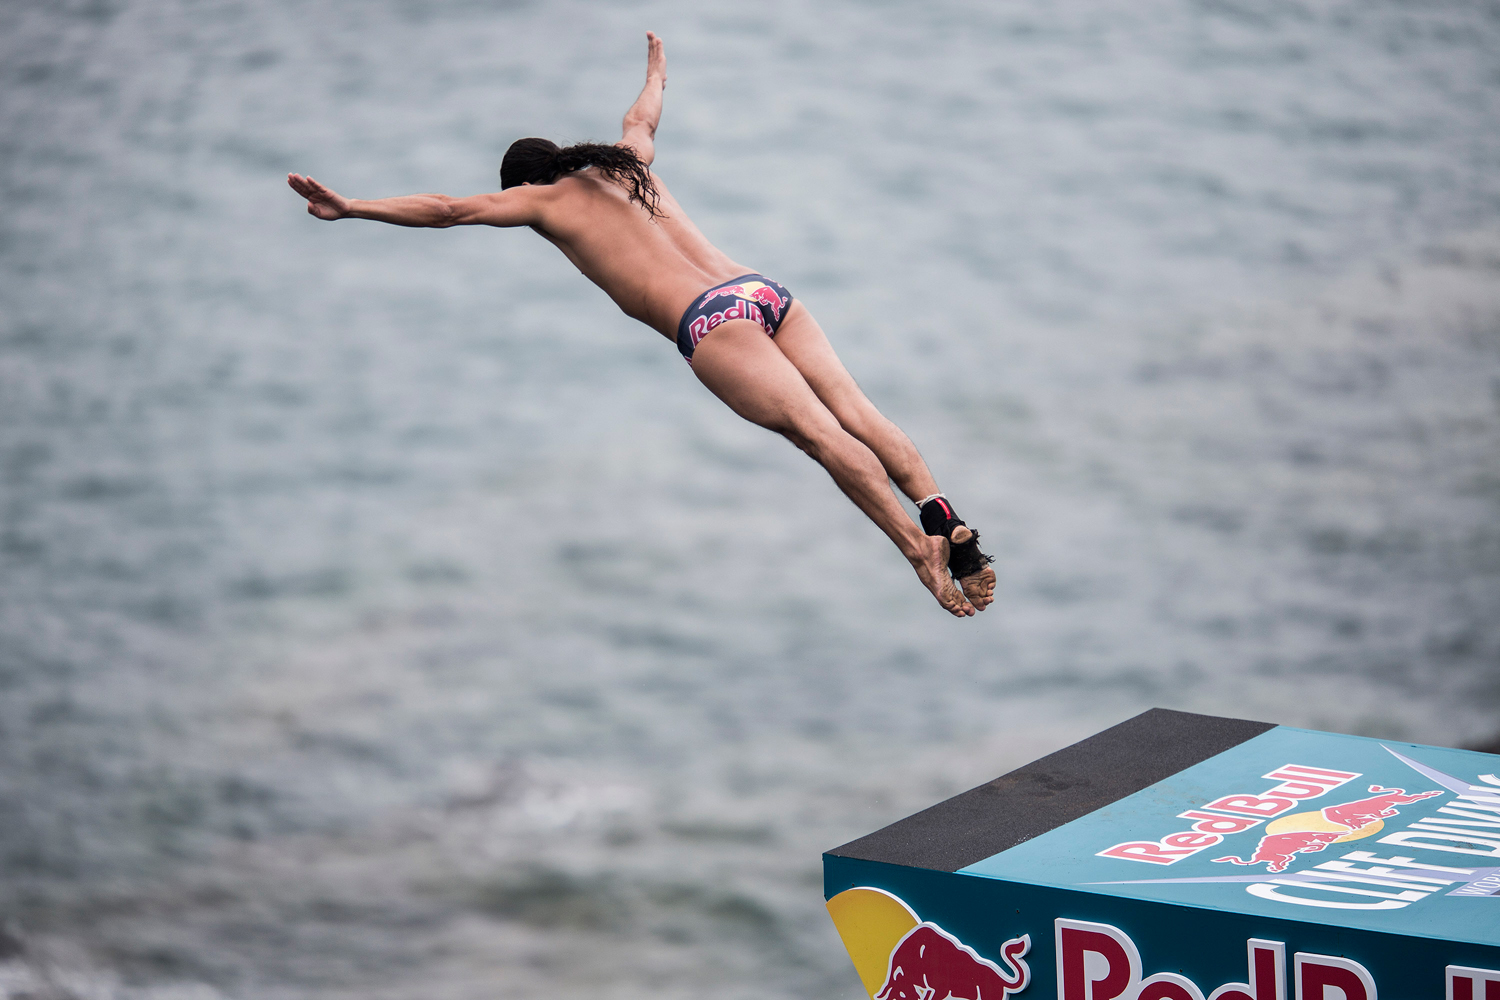 As the 2014 Red Bull Cliff Diving World Series approaches on May 10th, we look back at some of the most amazing photos from the past few seasons. This year, for the first time in the history of Red Bull Cliff Diving, the world's elite will be jumping into the Caribbean Ocean.  The first stop this year is in Havana, Cuba, while later stops will include Ireland, Norway, Portugal and Spain.